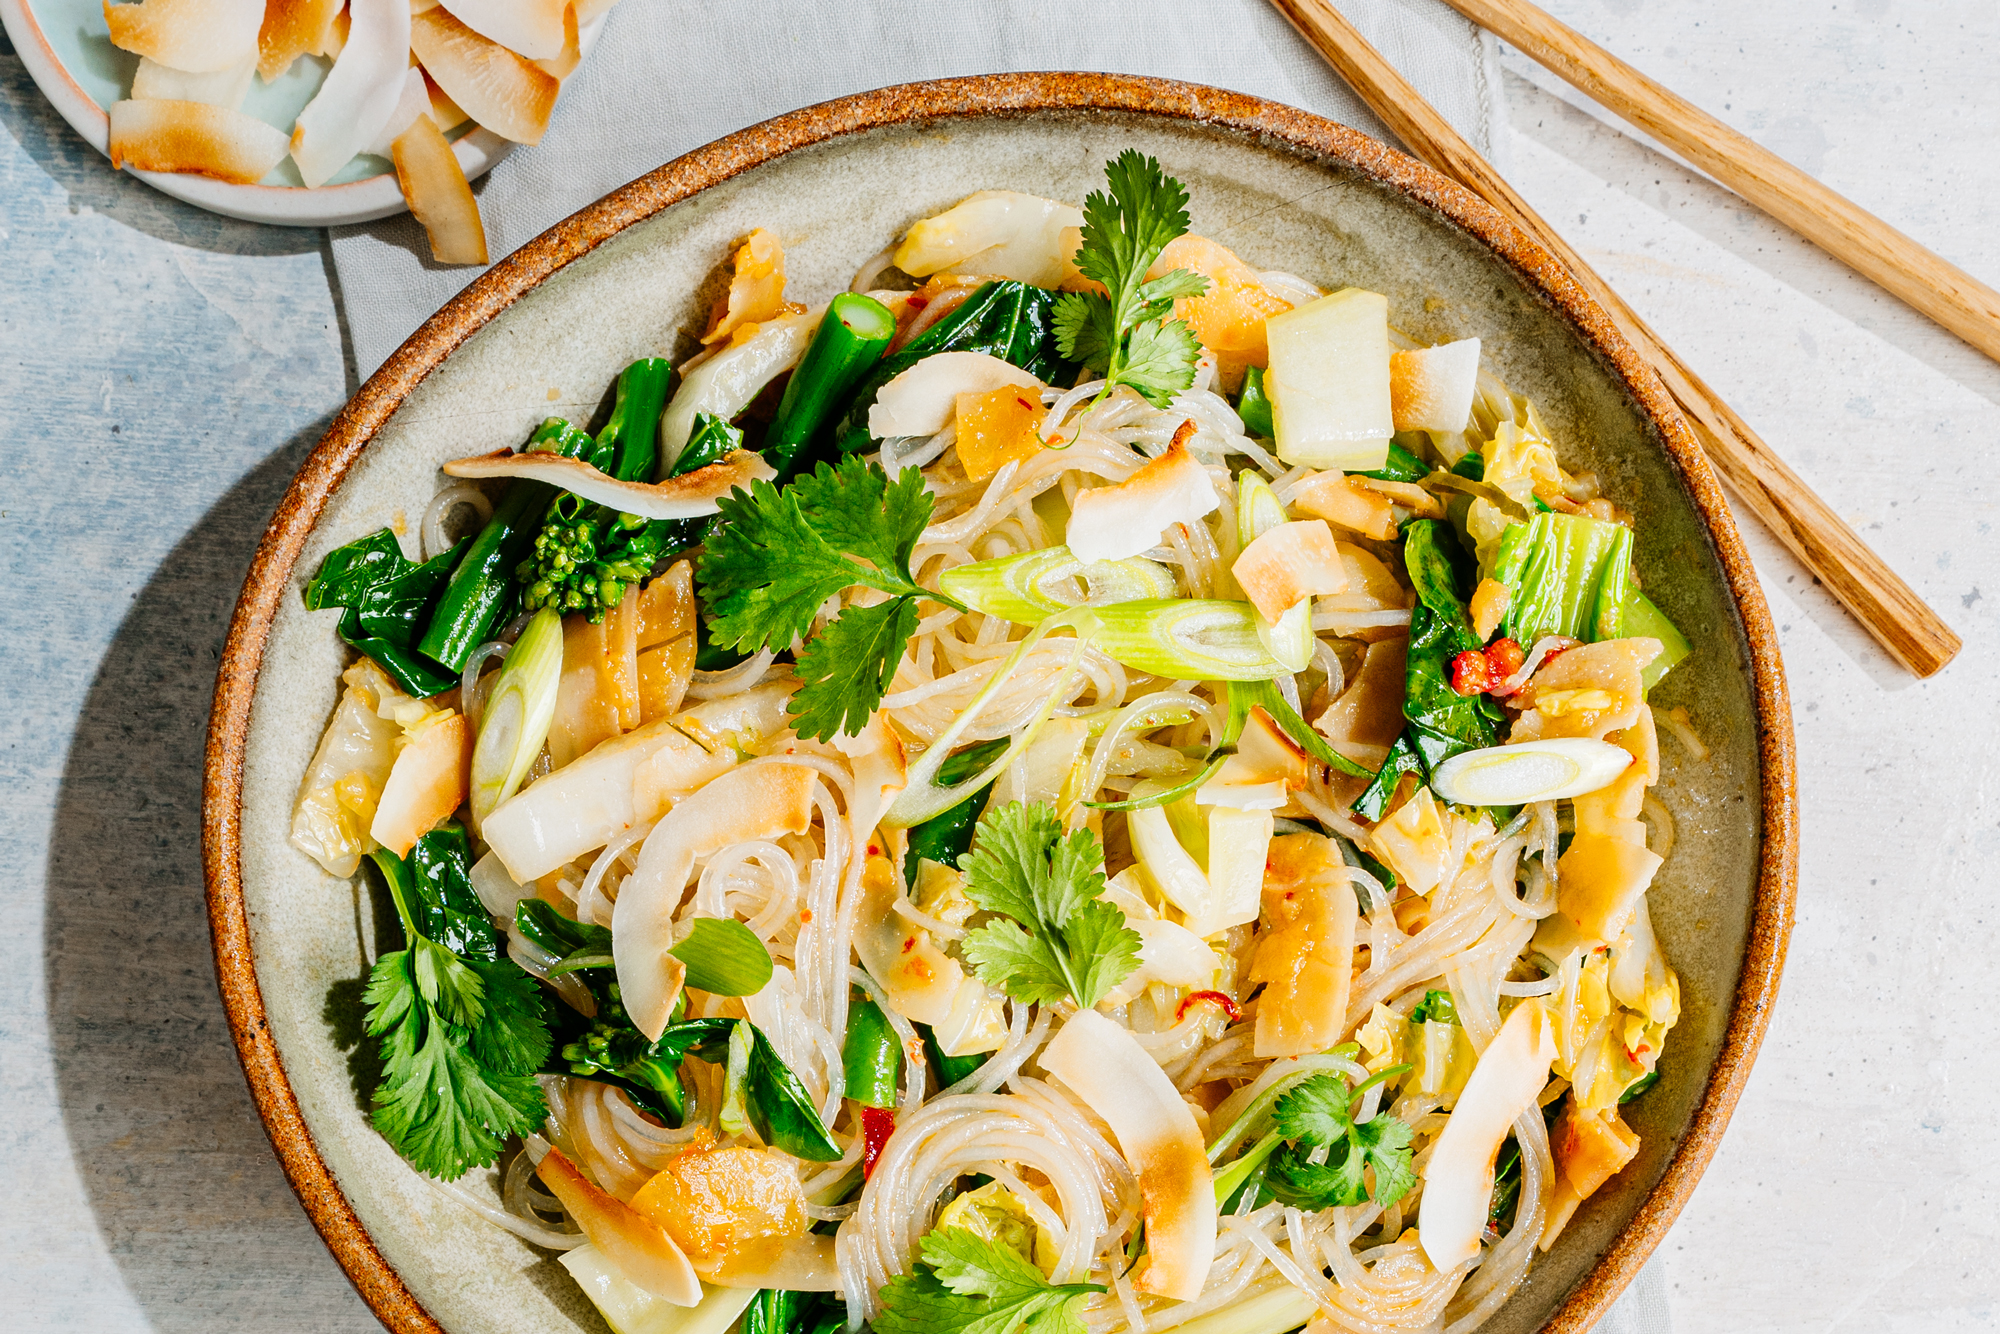 Mung Bean Vermicelli Salad with Spiced Coconut and Greens